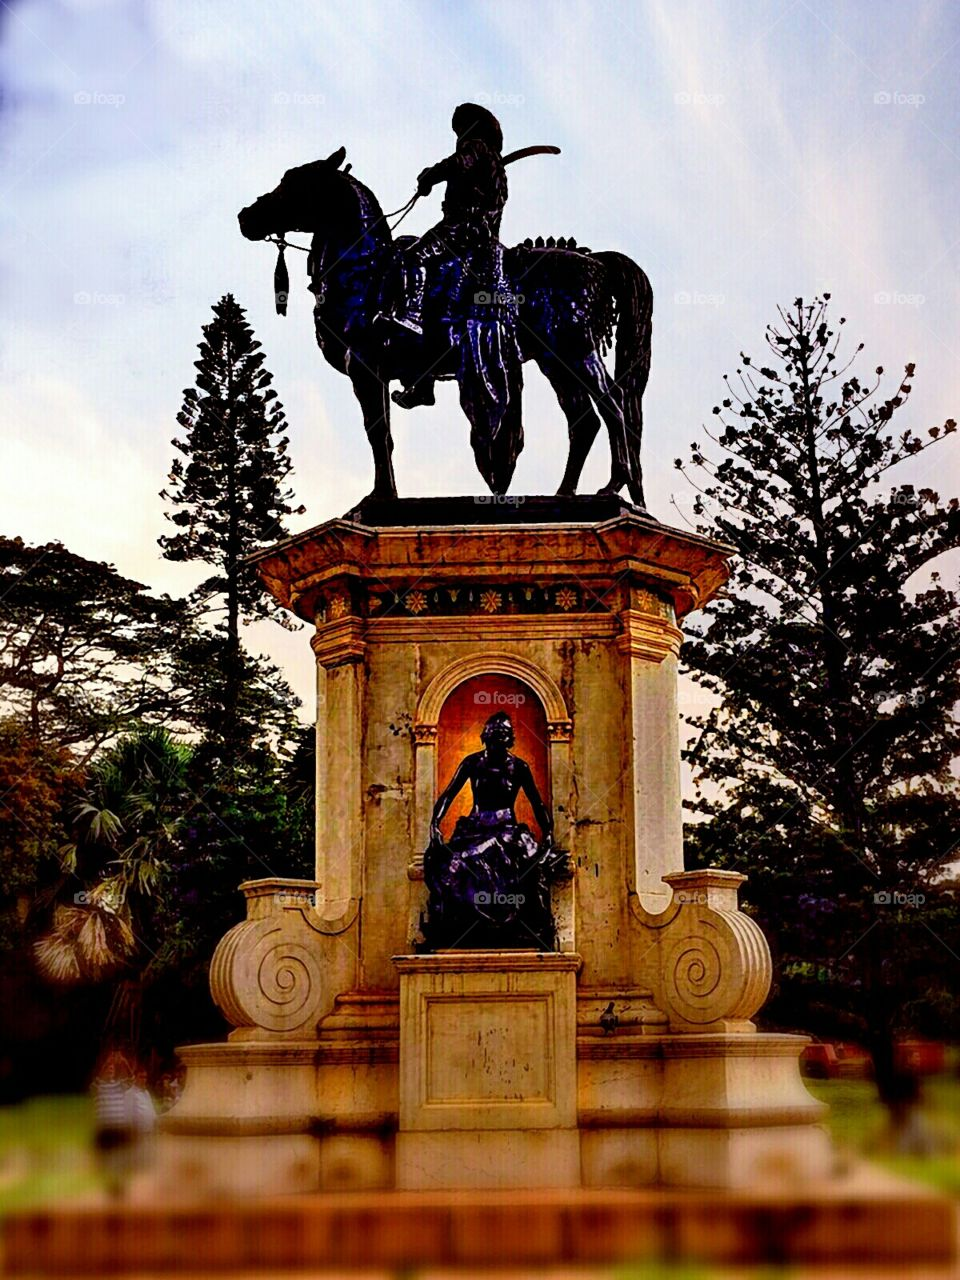 Prince Srikanta Wadyar. This one is the statue of Prince Srikanta Wadyar (1953 - 2013), the only son of the last ruling Maharaja of Mysore, that